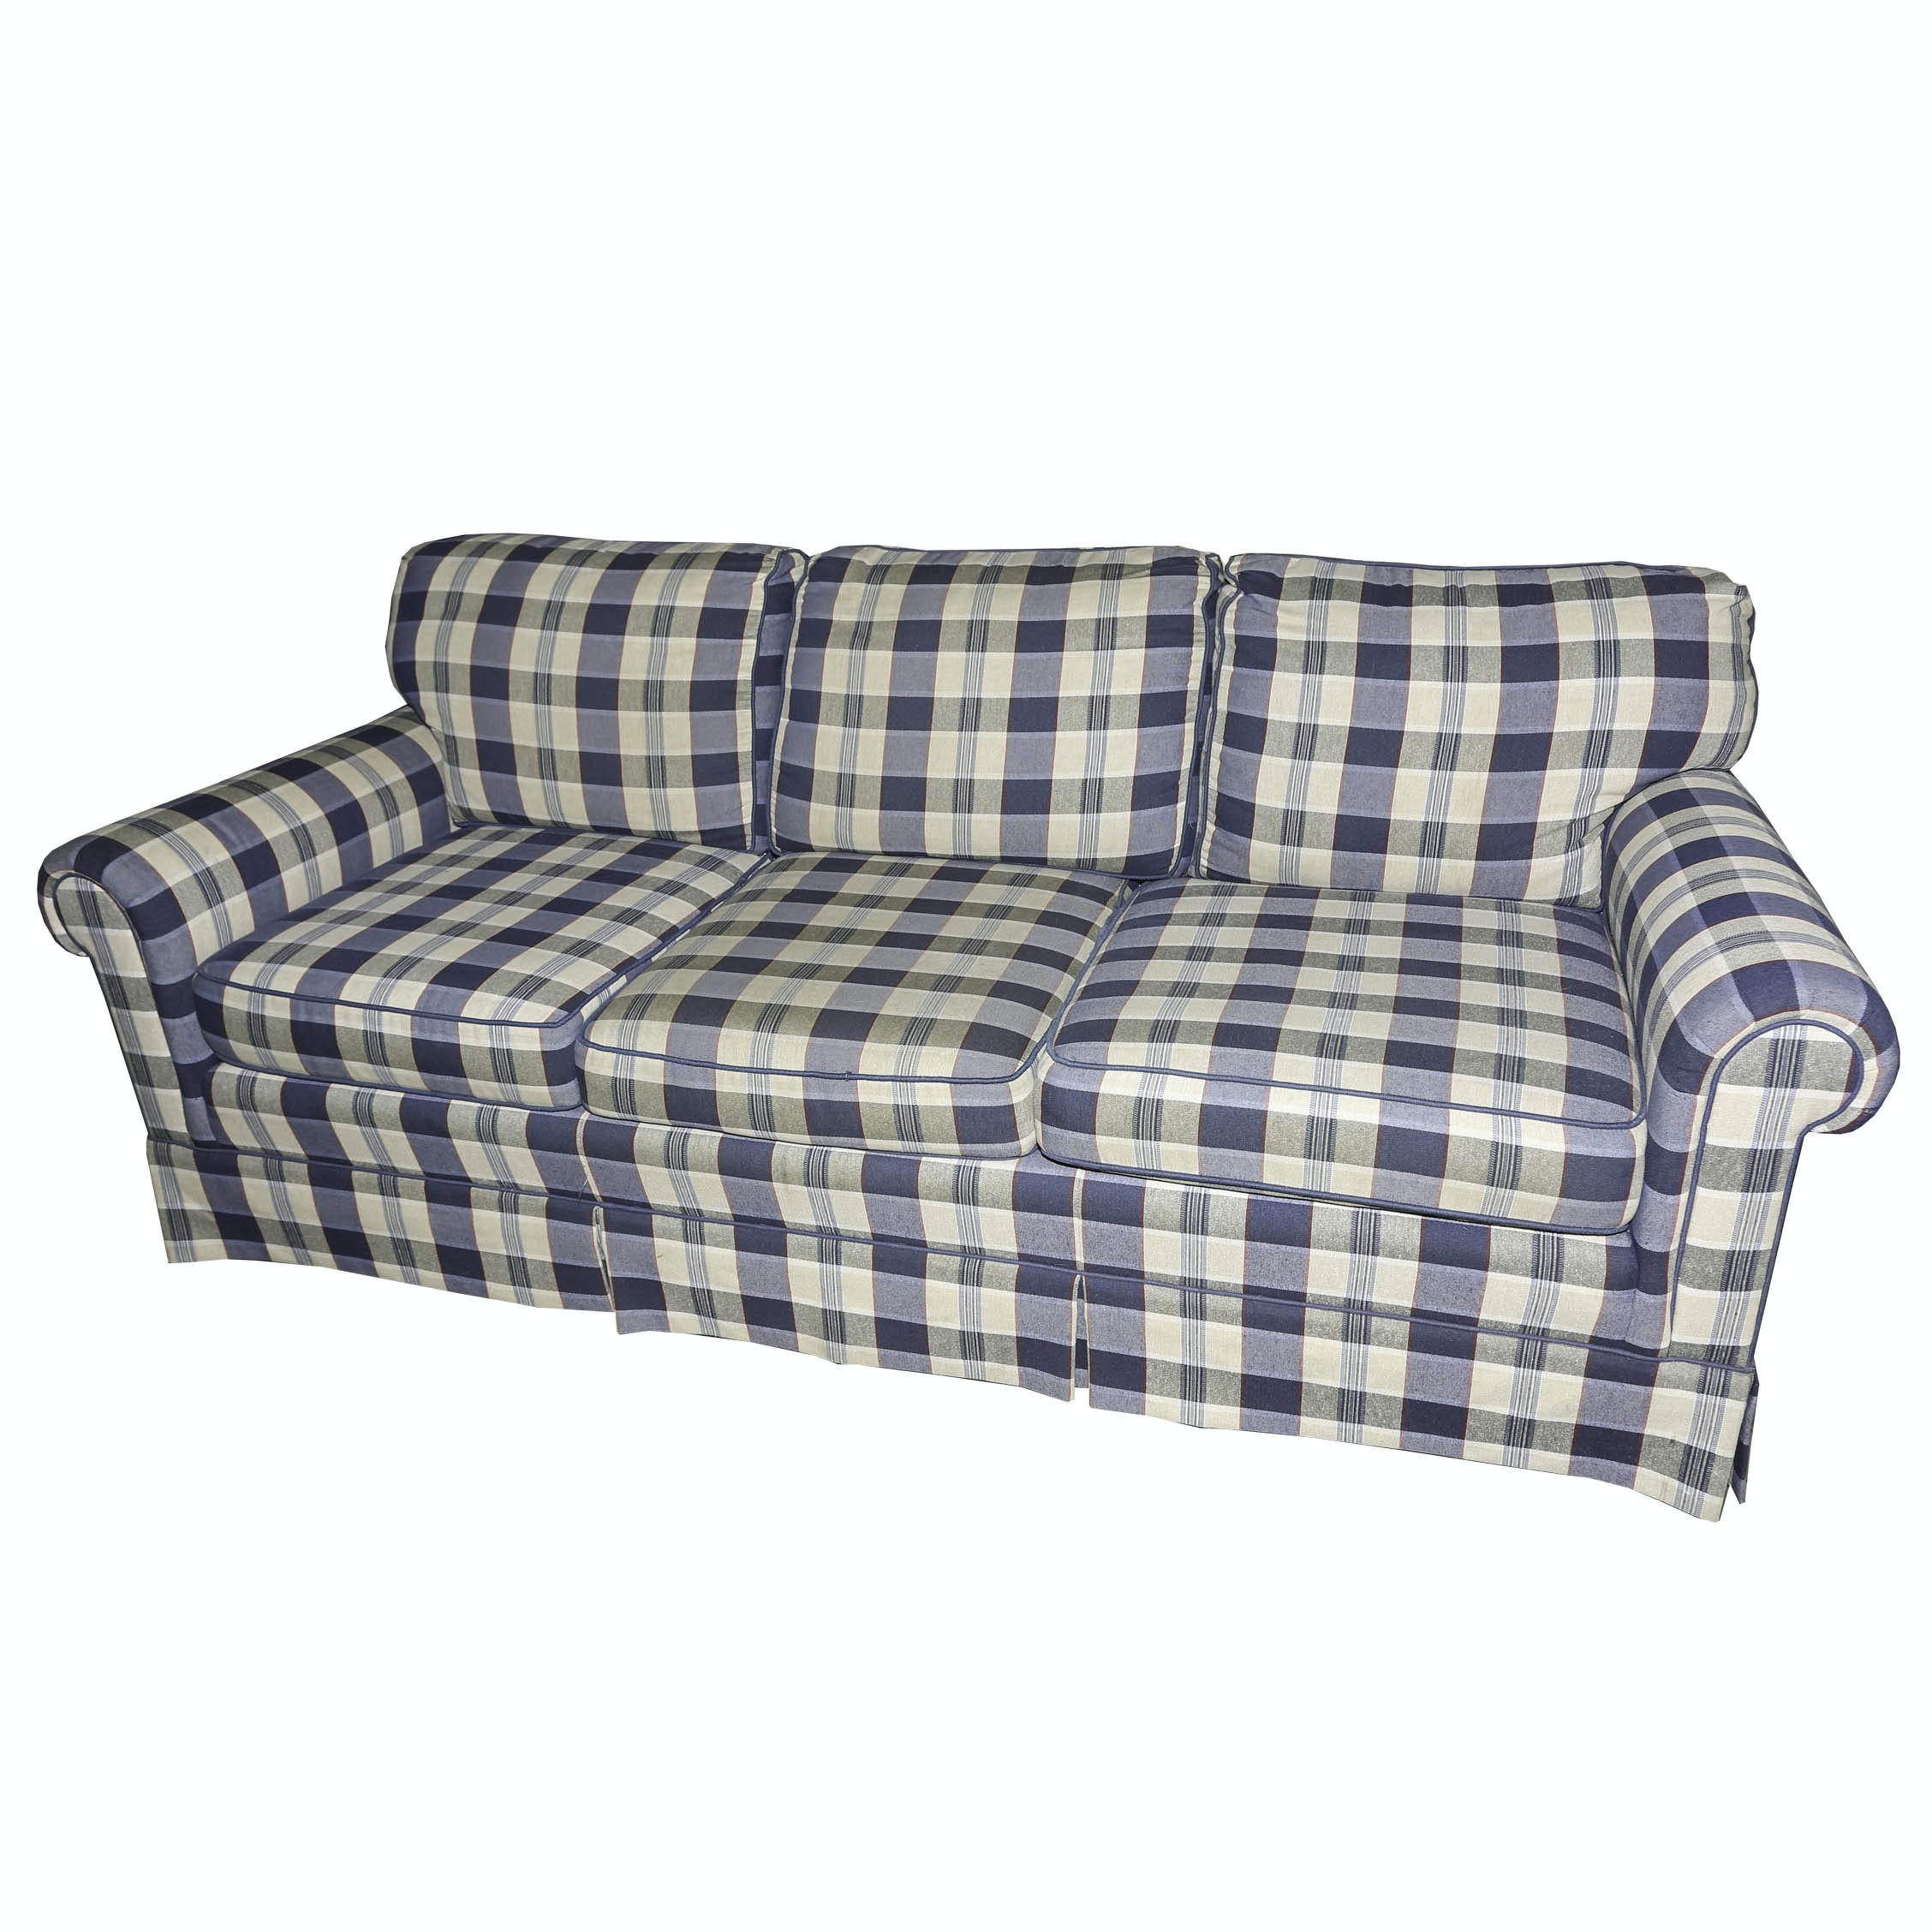 Traditional Plaid Sofa By Wesley Hall ...